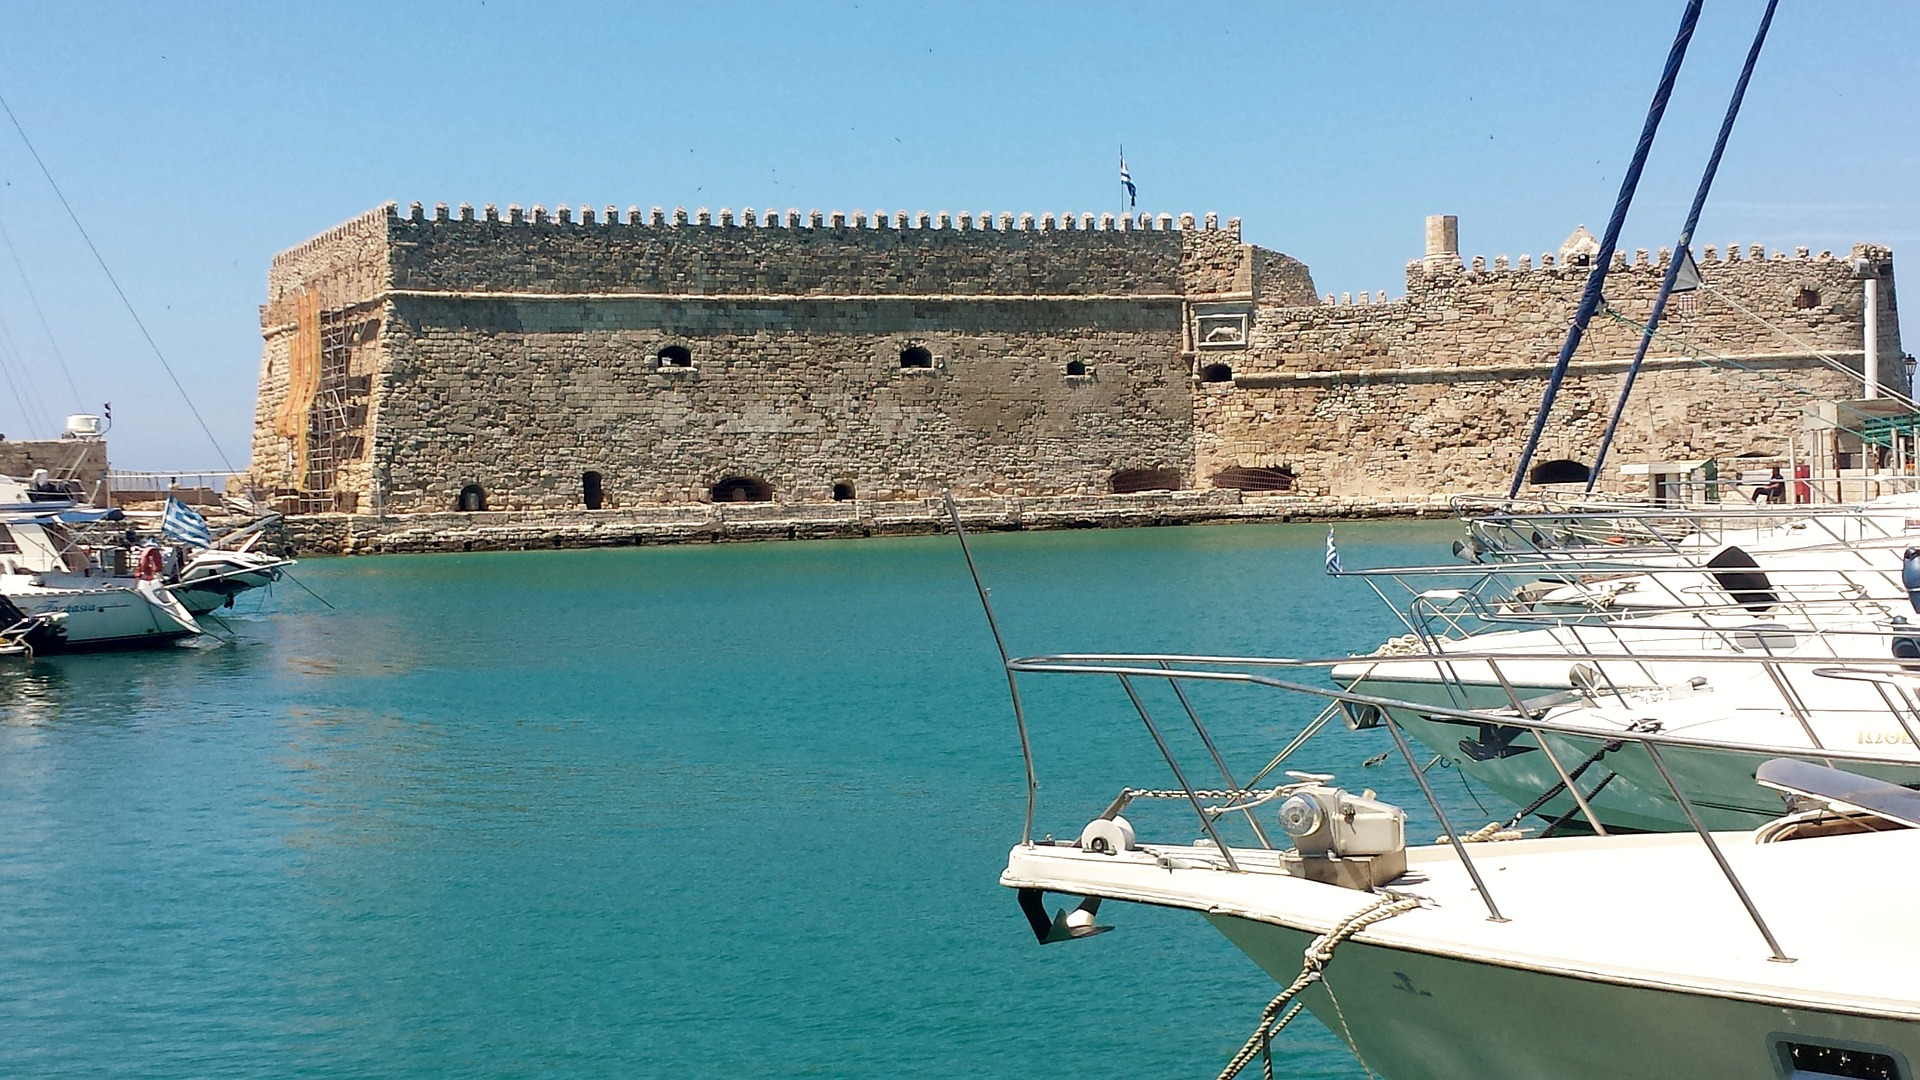 Travel to Heraklion, Crete, Greece